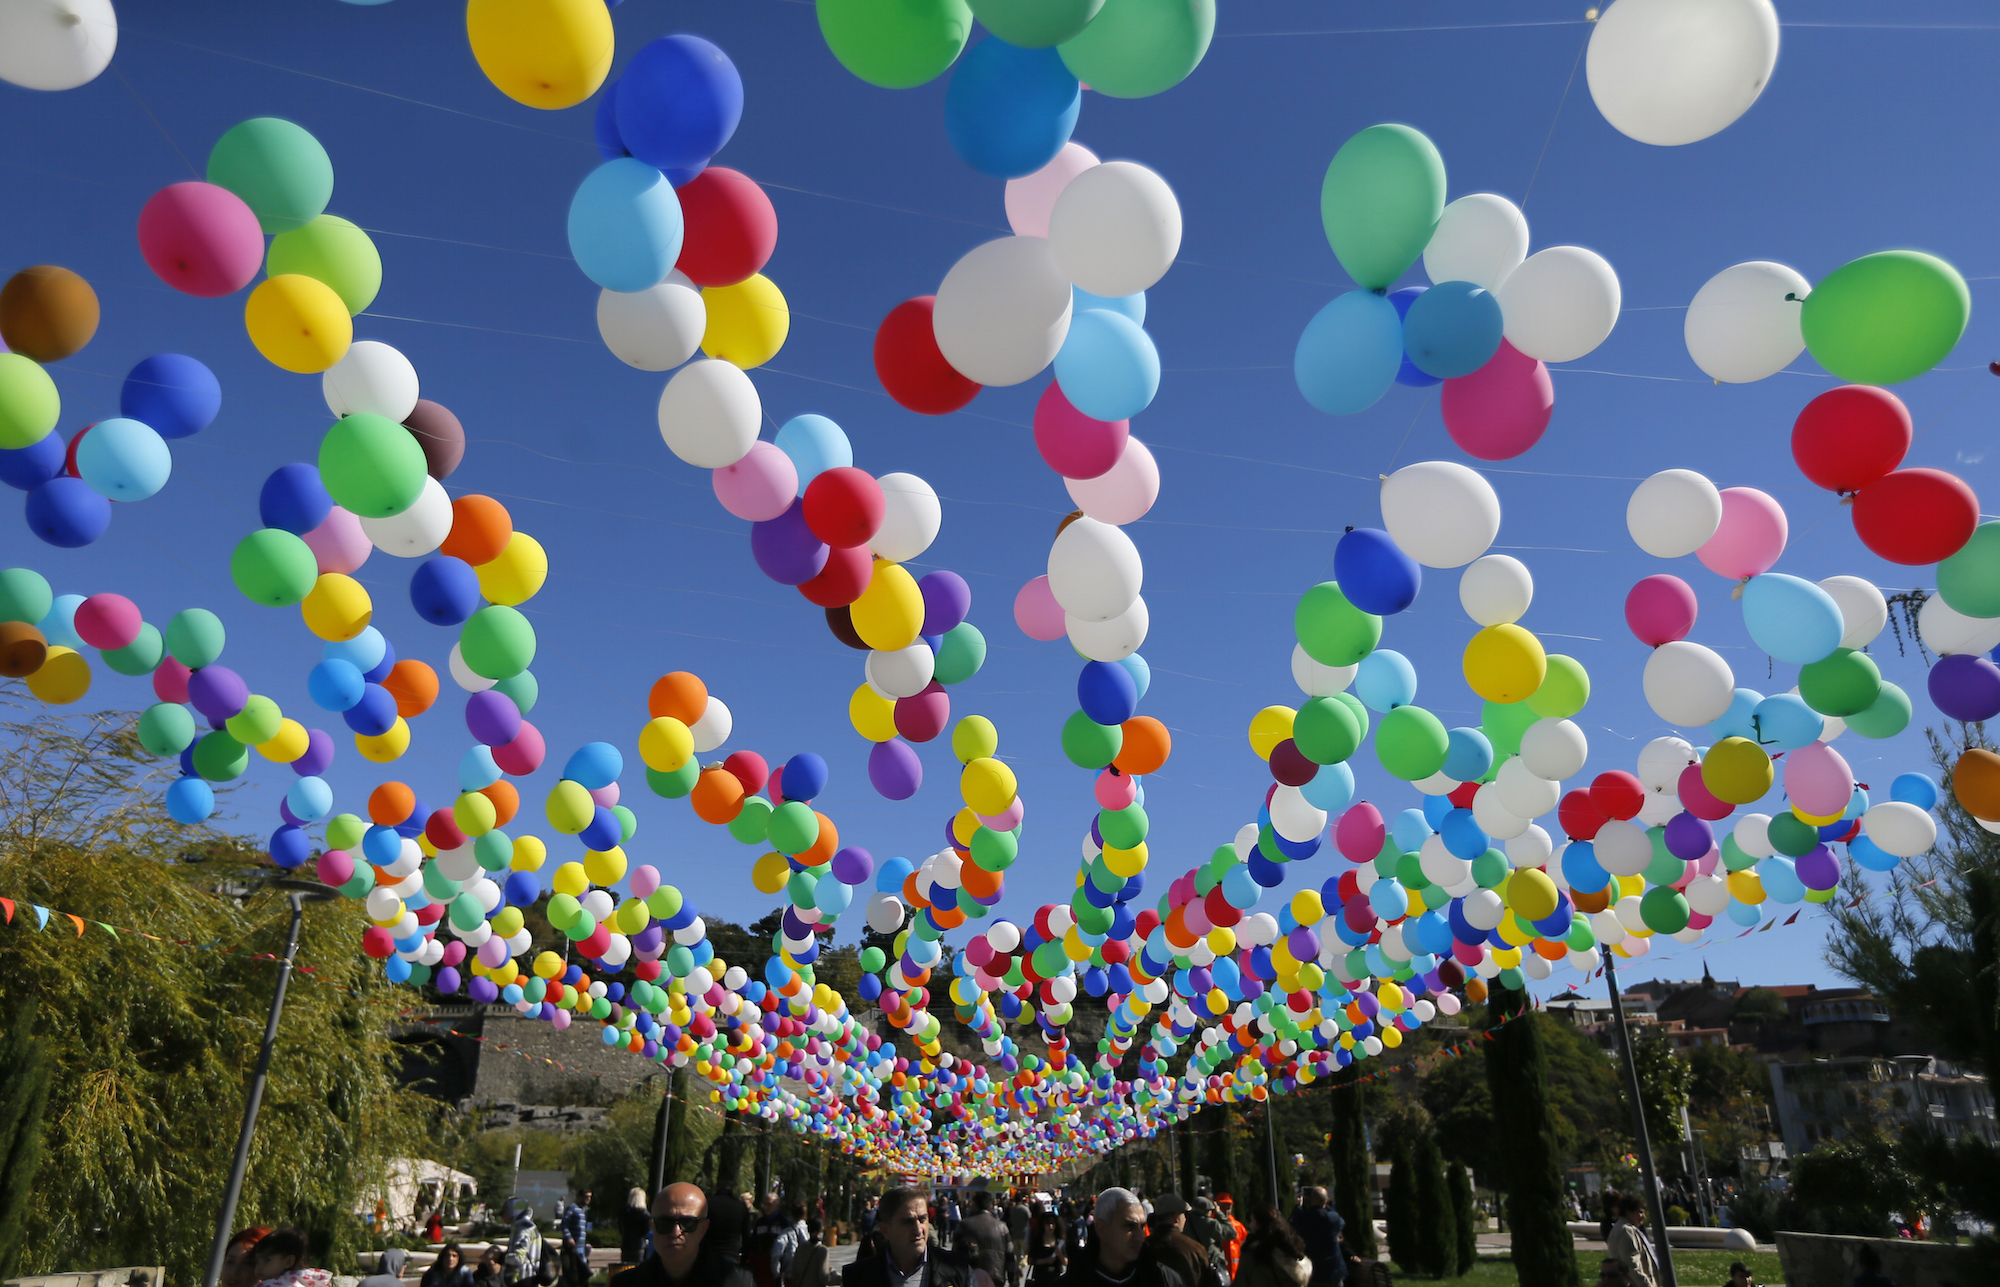 epa05586454 Georgian people walk under balloons as they attend the 'Tbilisoba' celebrations in Tbilisi, Georgia, 15 October 2016. The annual festival is dedicated to the Georgian capital of Tbilisi.  EPA/ZURAB KURTSIKIDZE